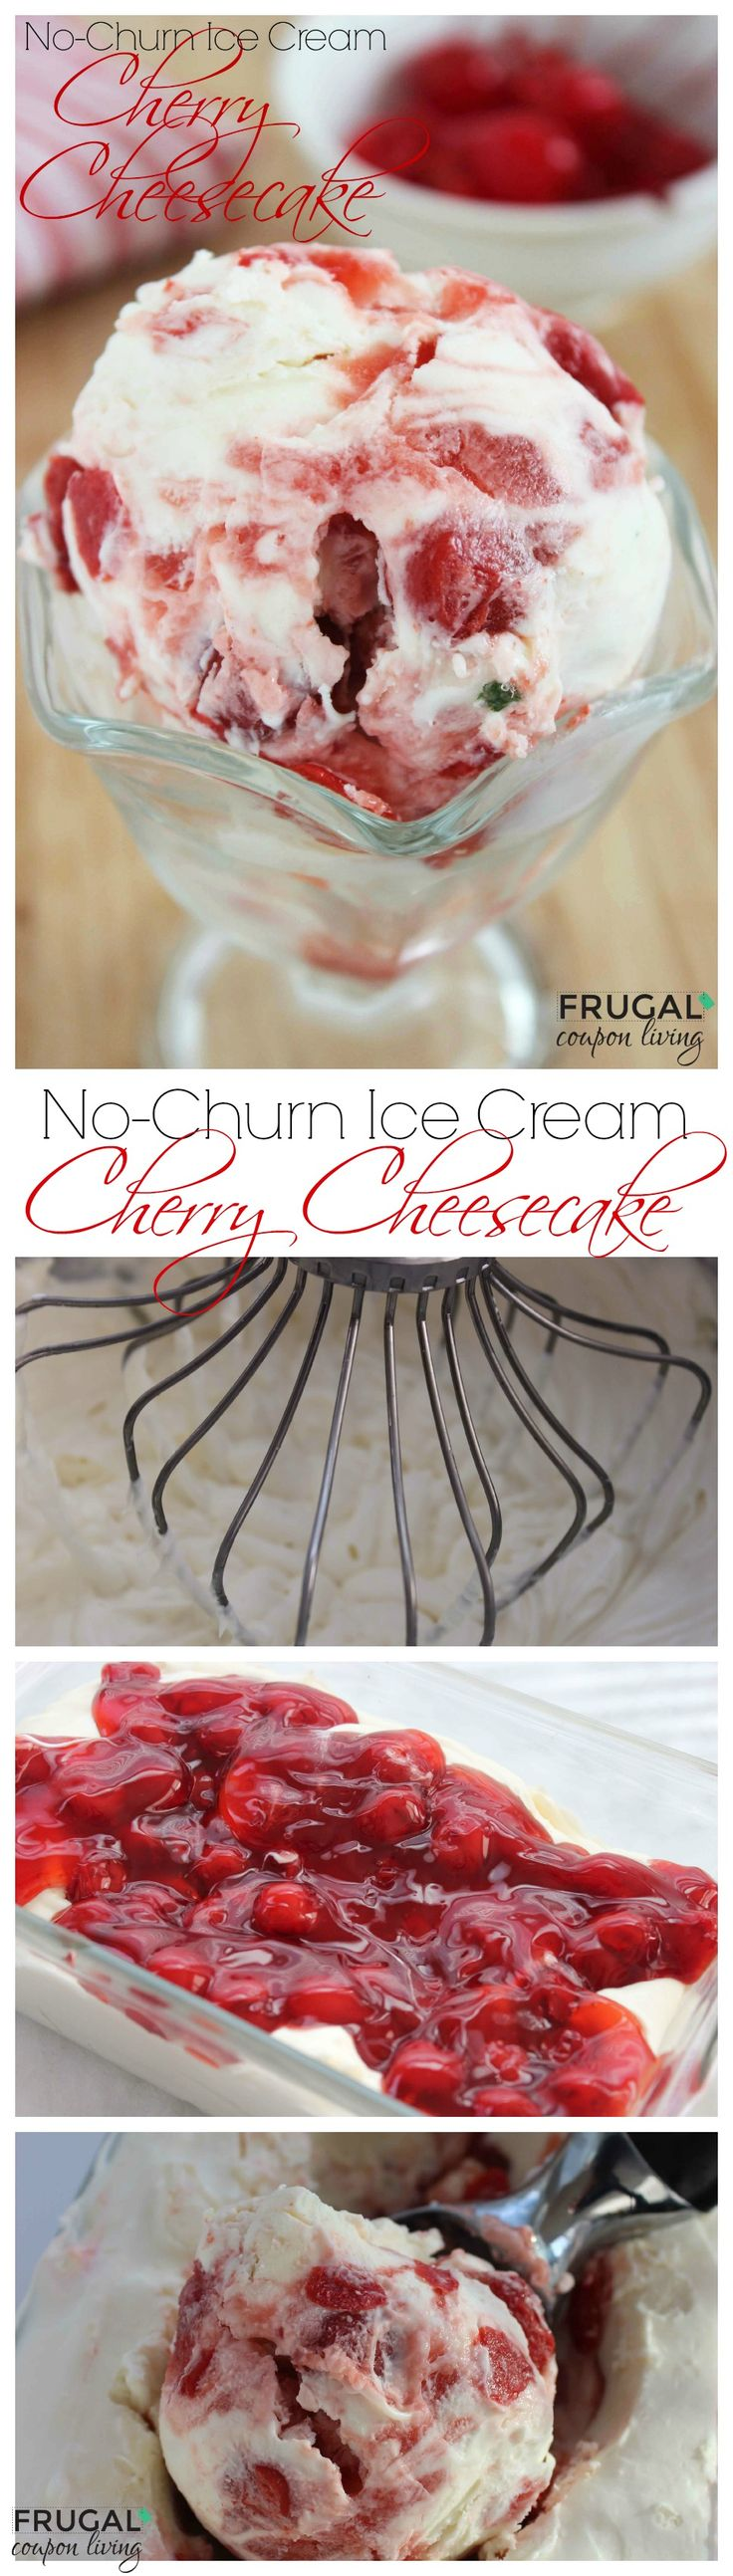 No-Churn Cherry Cheesecake Ice Cream Recipe.Homemade Ice Cream. Yum